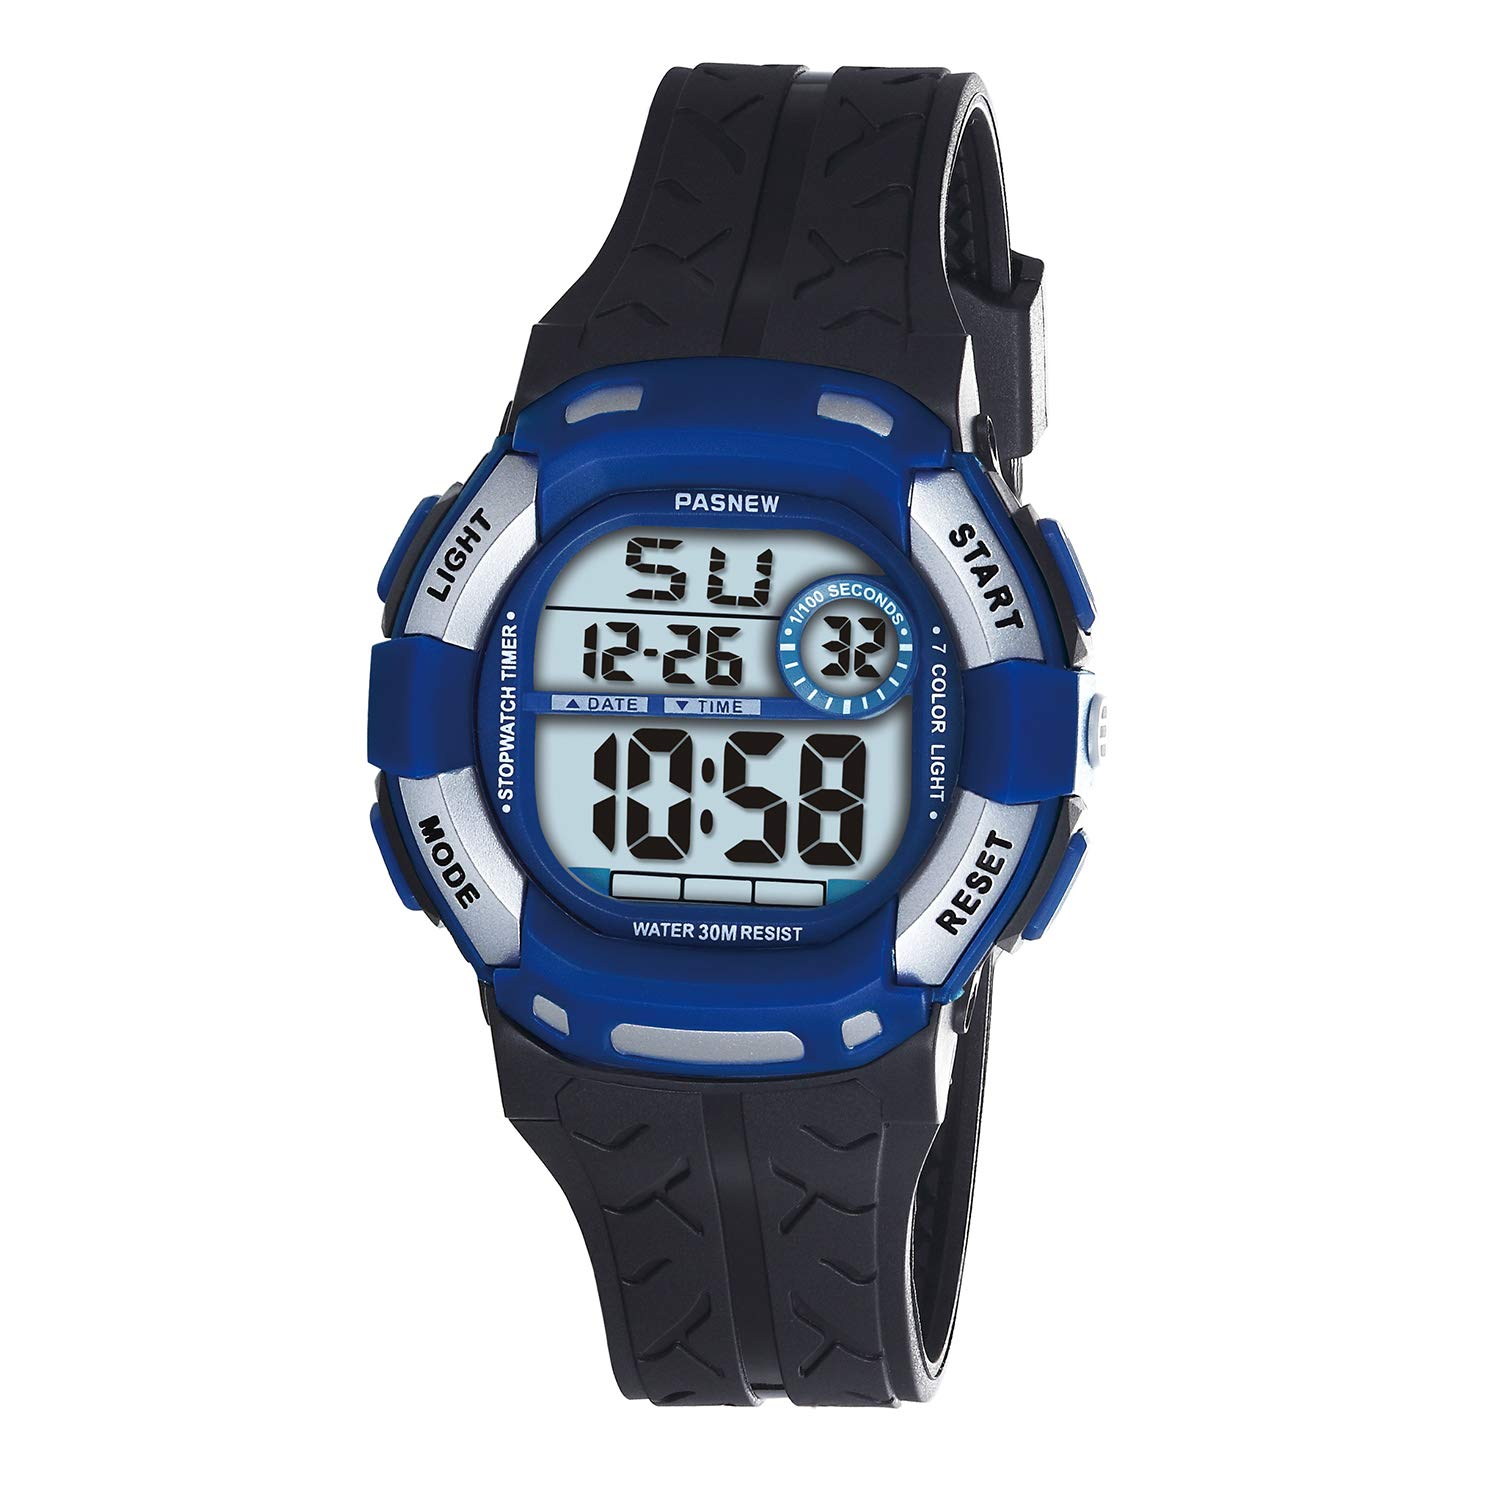 PASNEW Kids Watches Waterproof 100FT Digital Sports Wristwatch with 7-Color Flashing LED Light Alarm Stopwatch Chime Date Day Black Blue